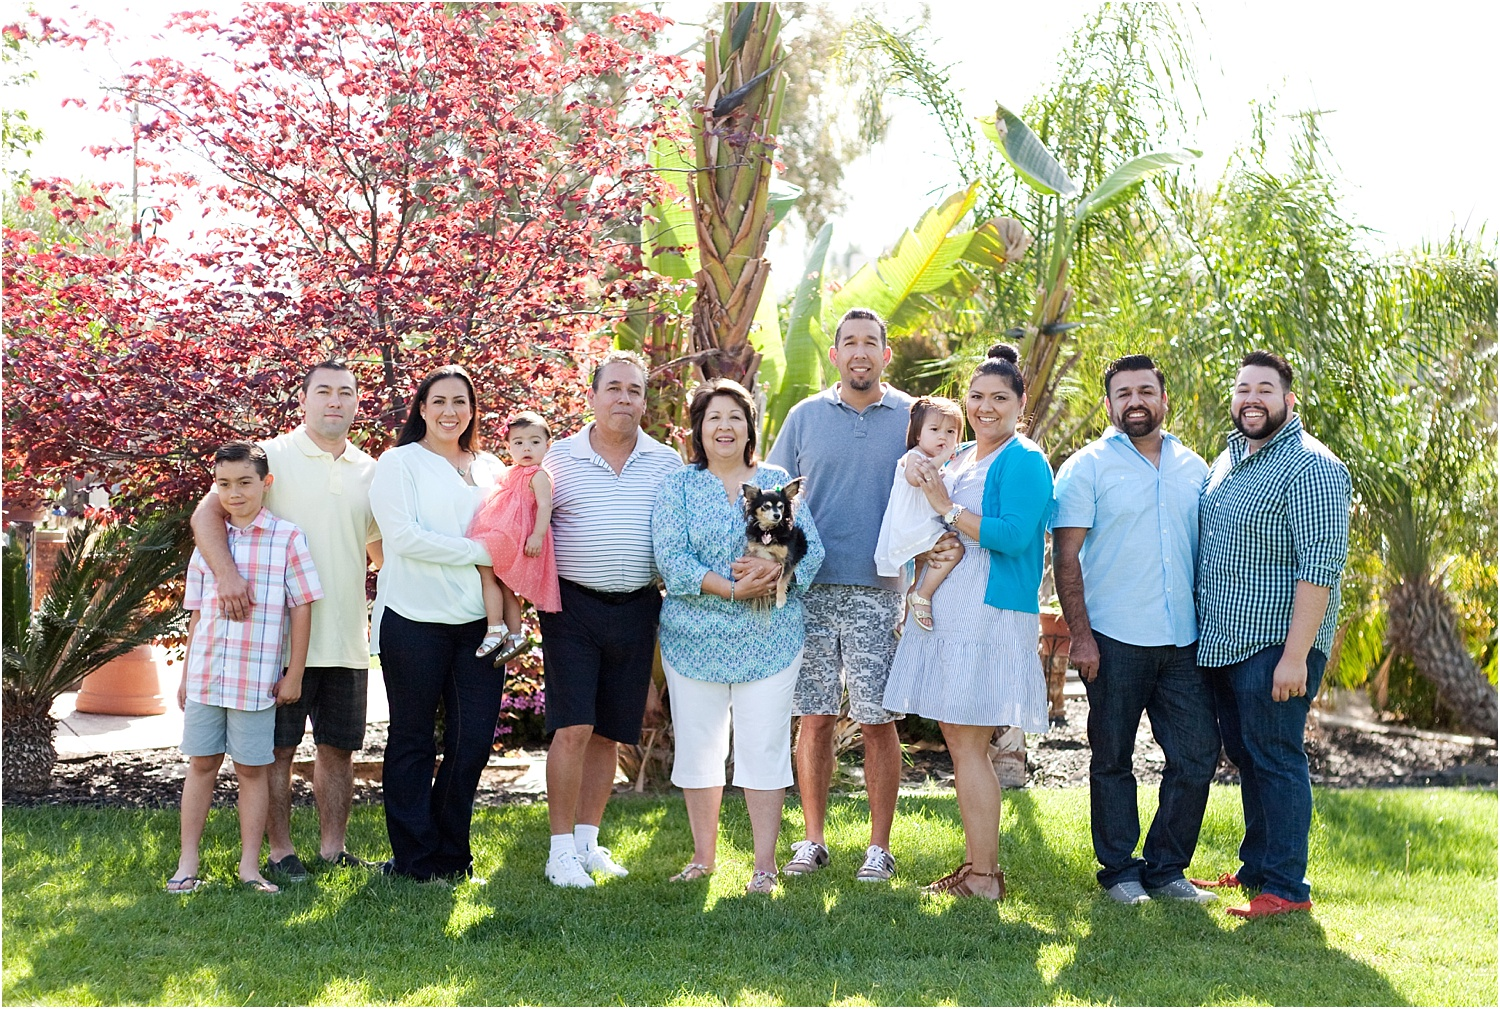 Tips for Posing Large Families and Groups - large family in front of trees